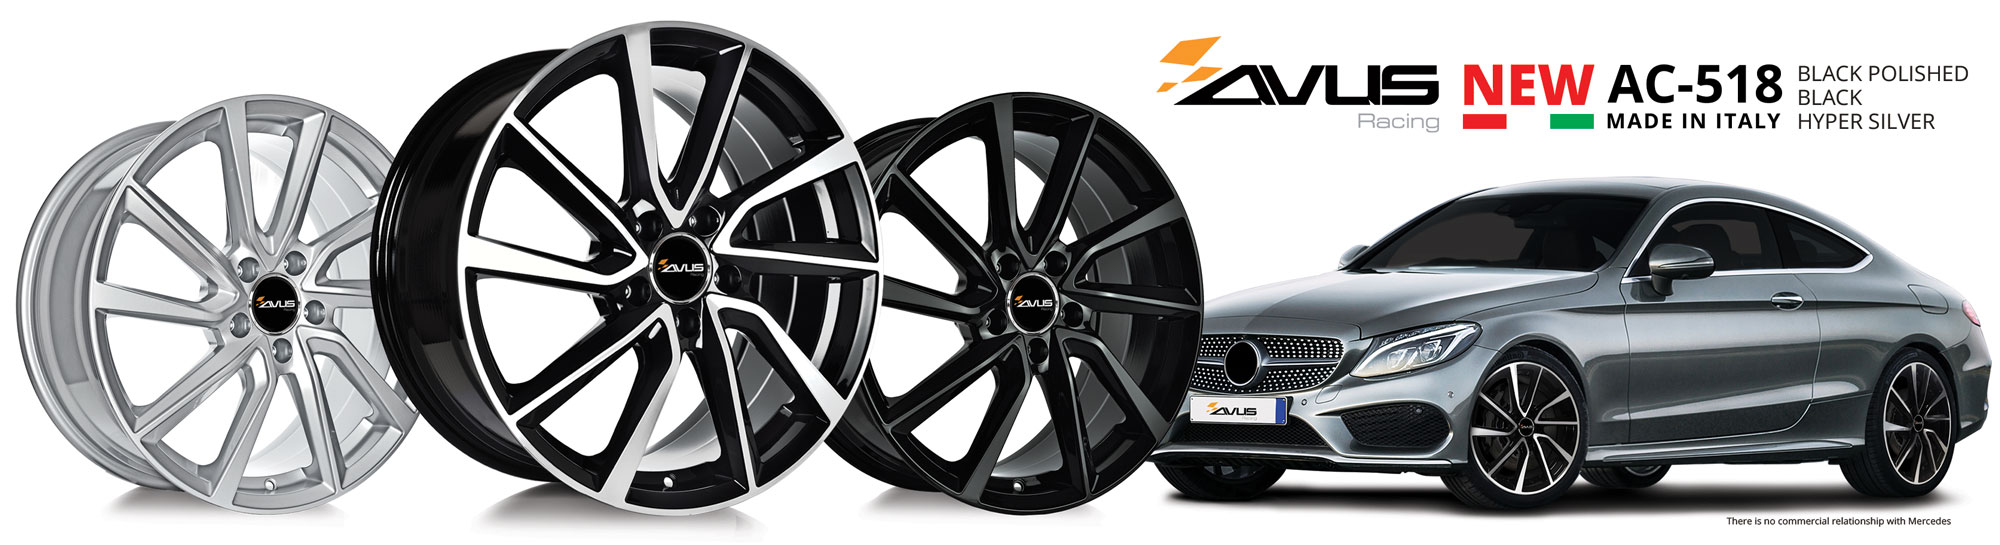 ac-518 avus racing